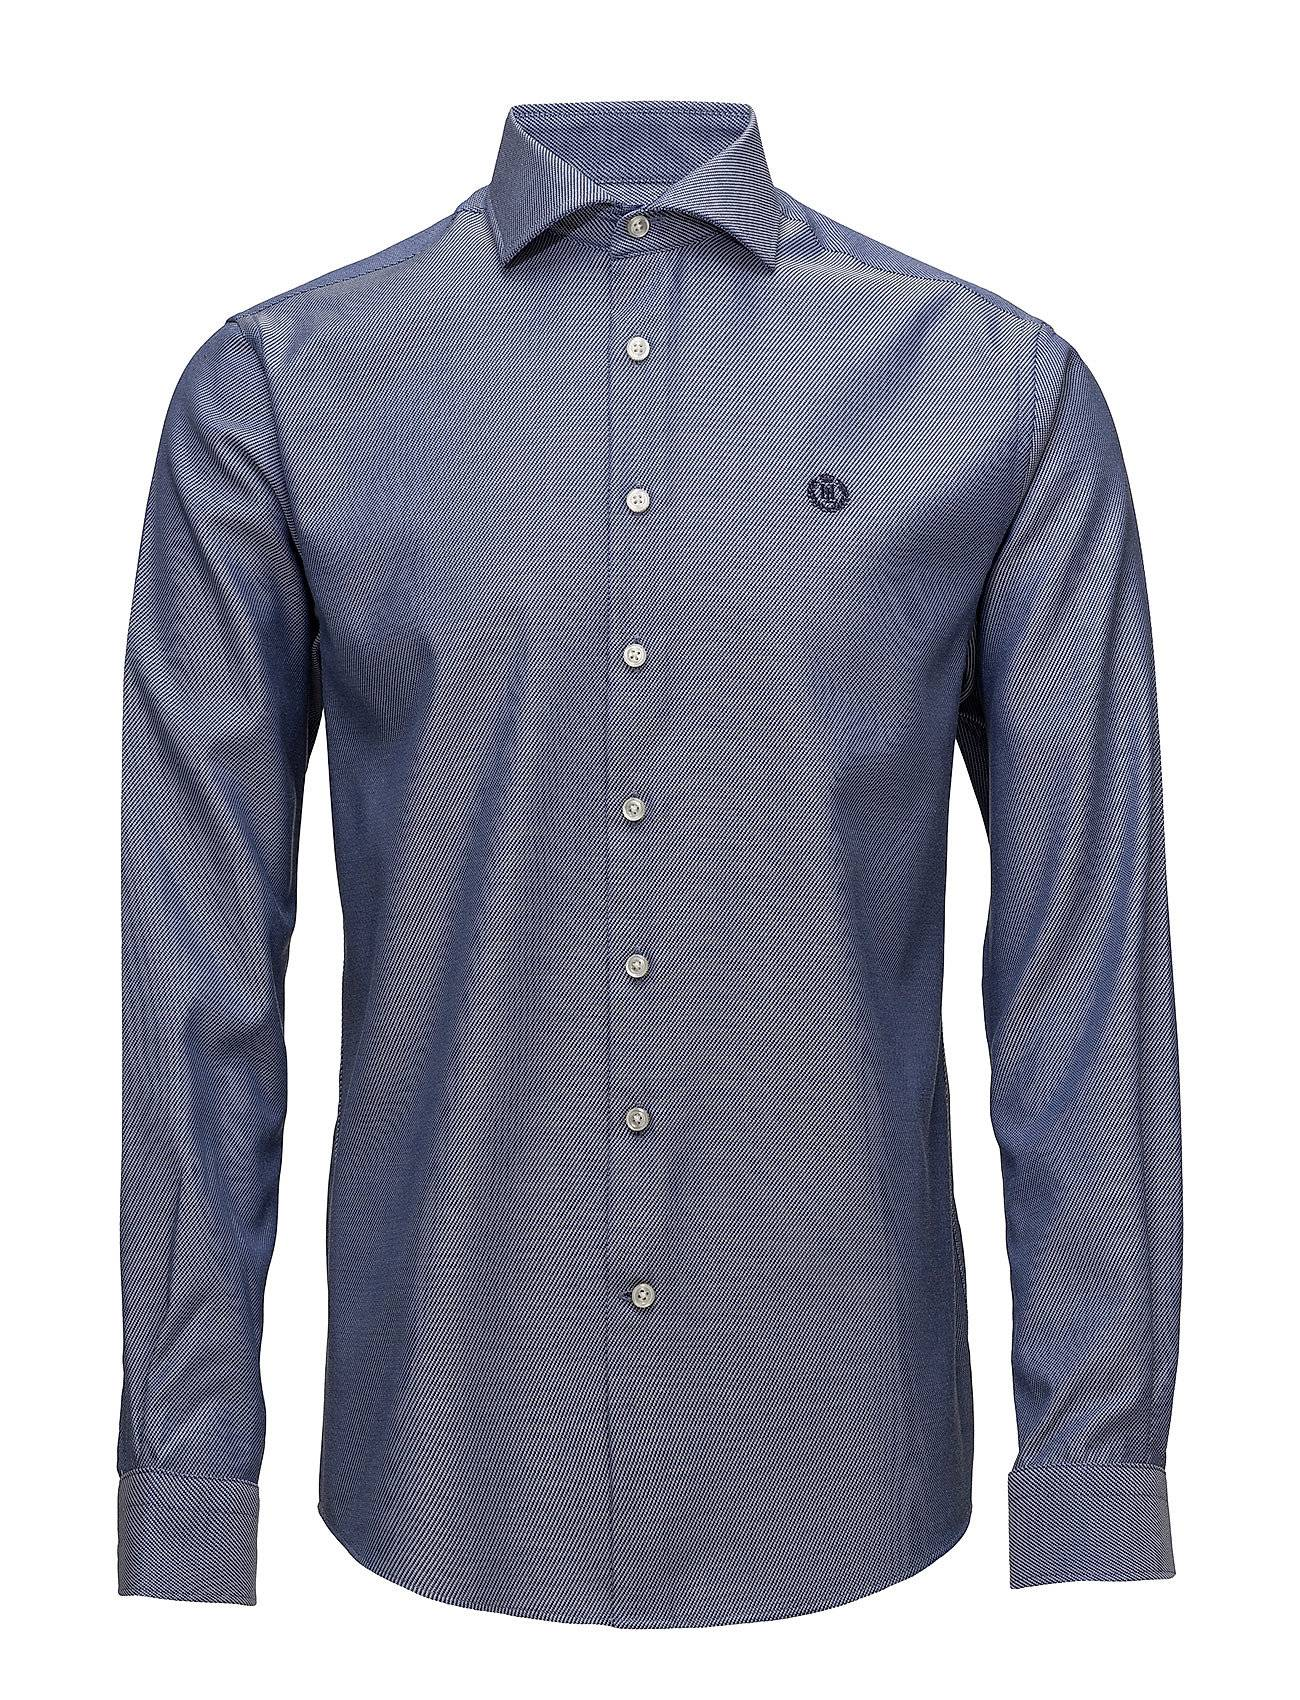 Henri Lloyd Archbell Regular Shirt